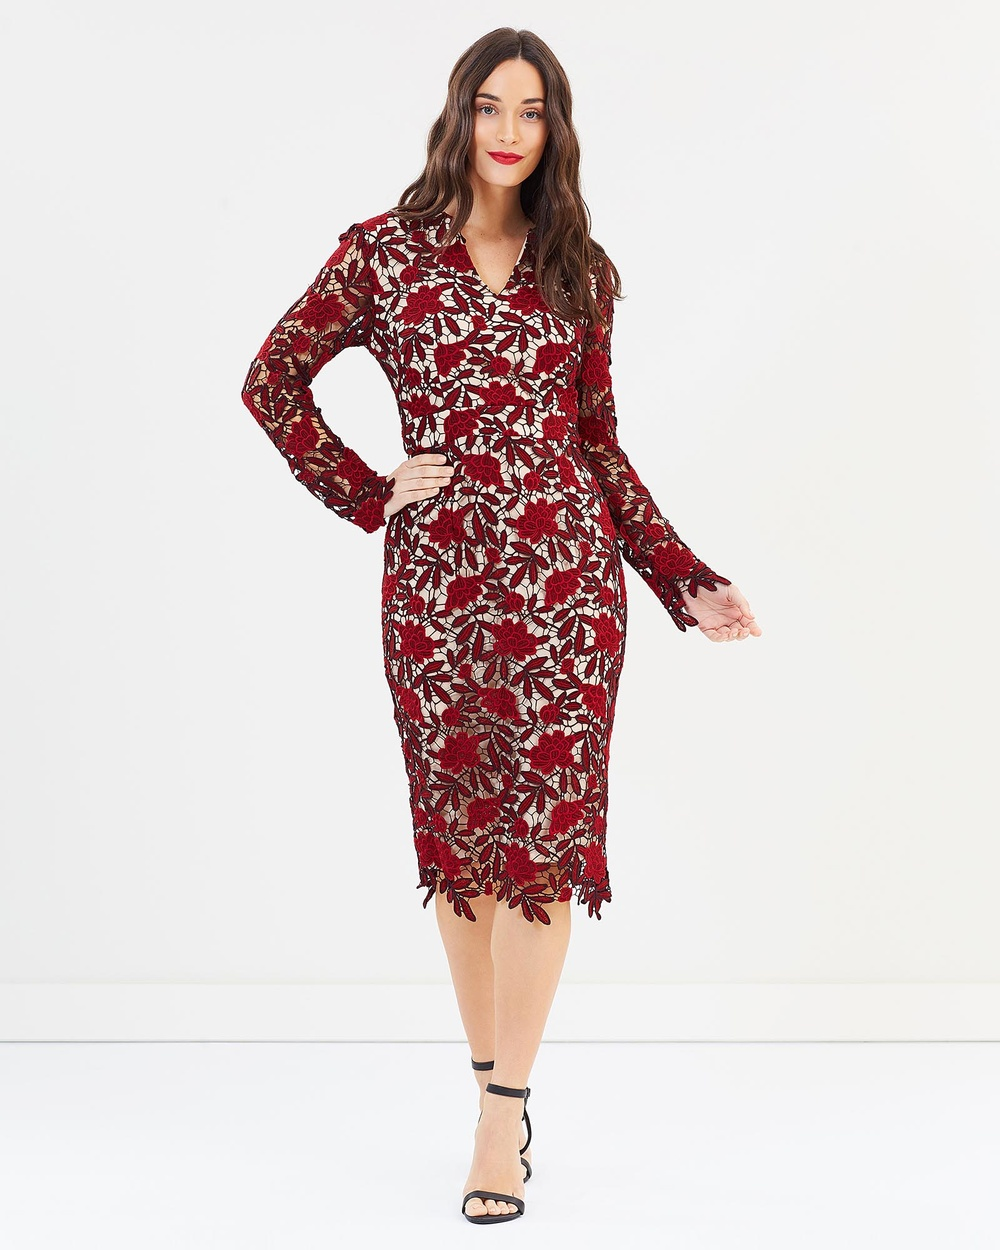 Pink Ruby Piper Long Sleeve Dress Dresses Nude & Red Piper Long Sleeve Dress